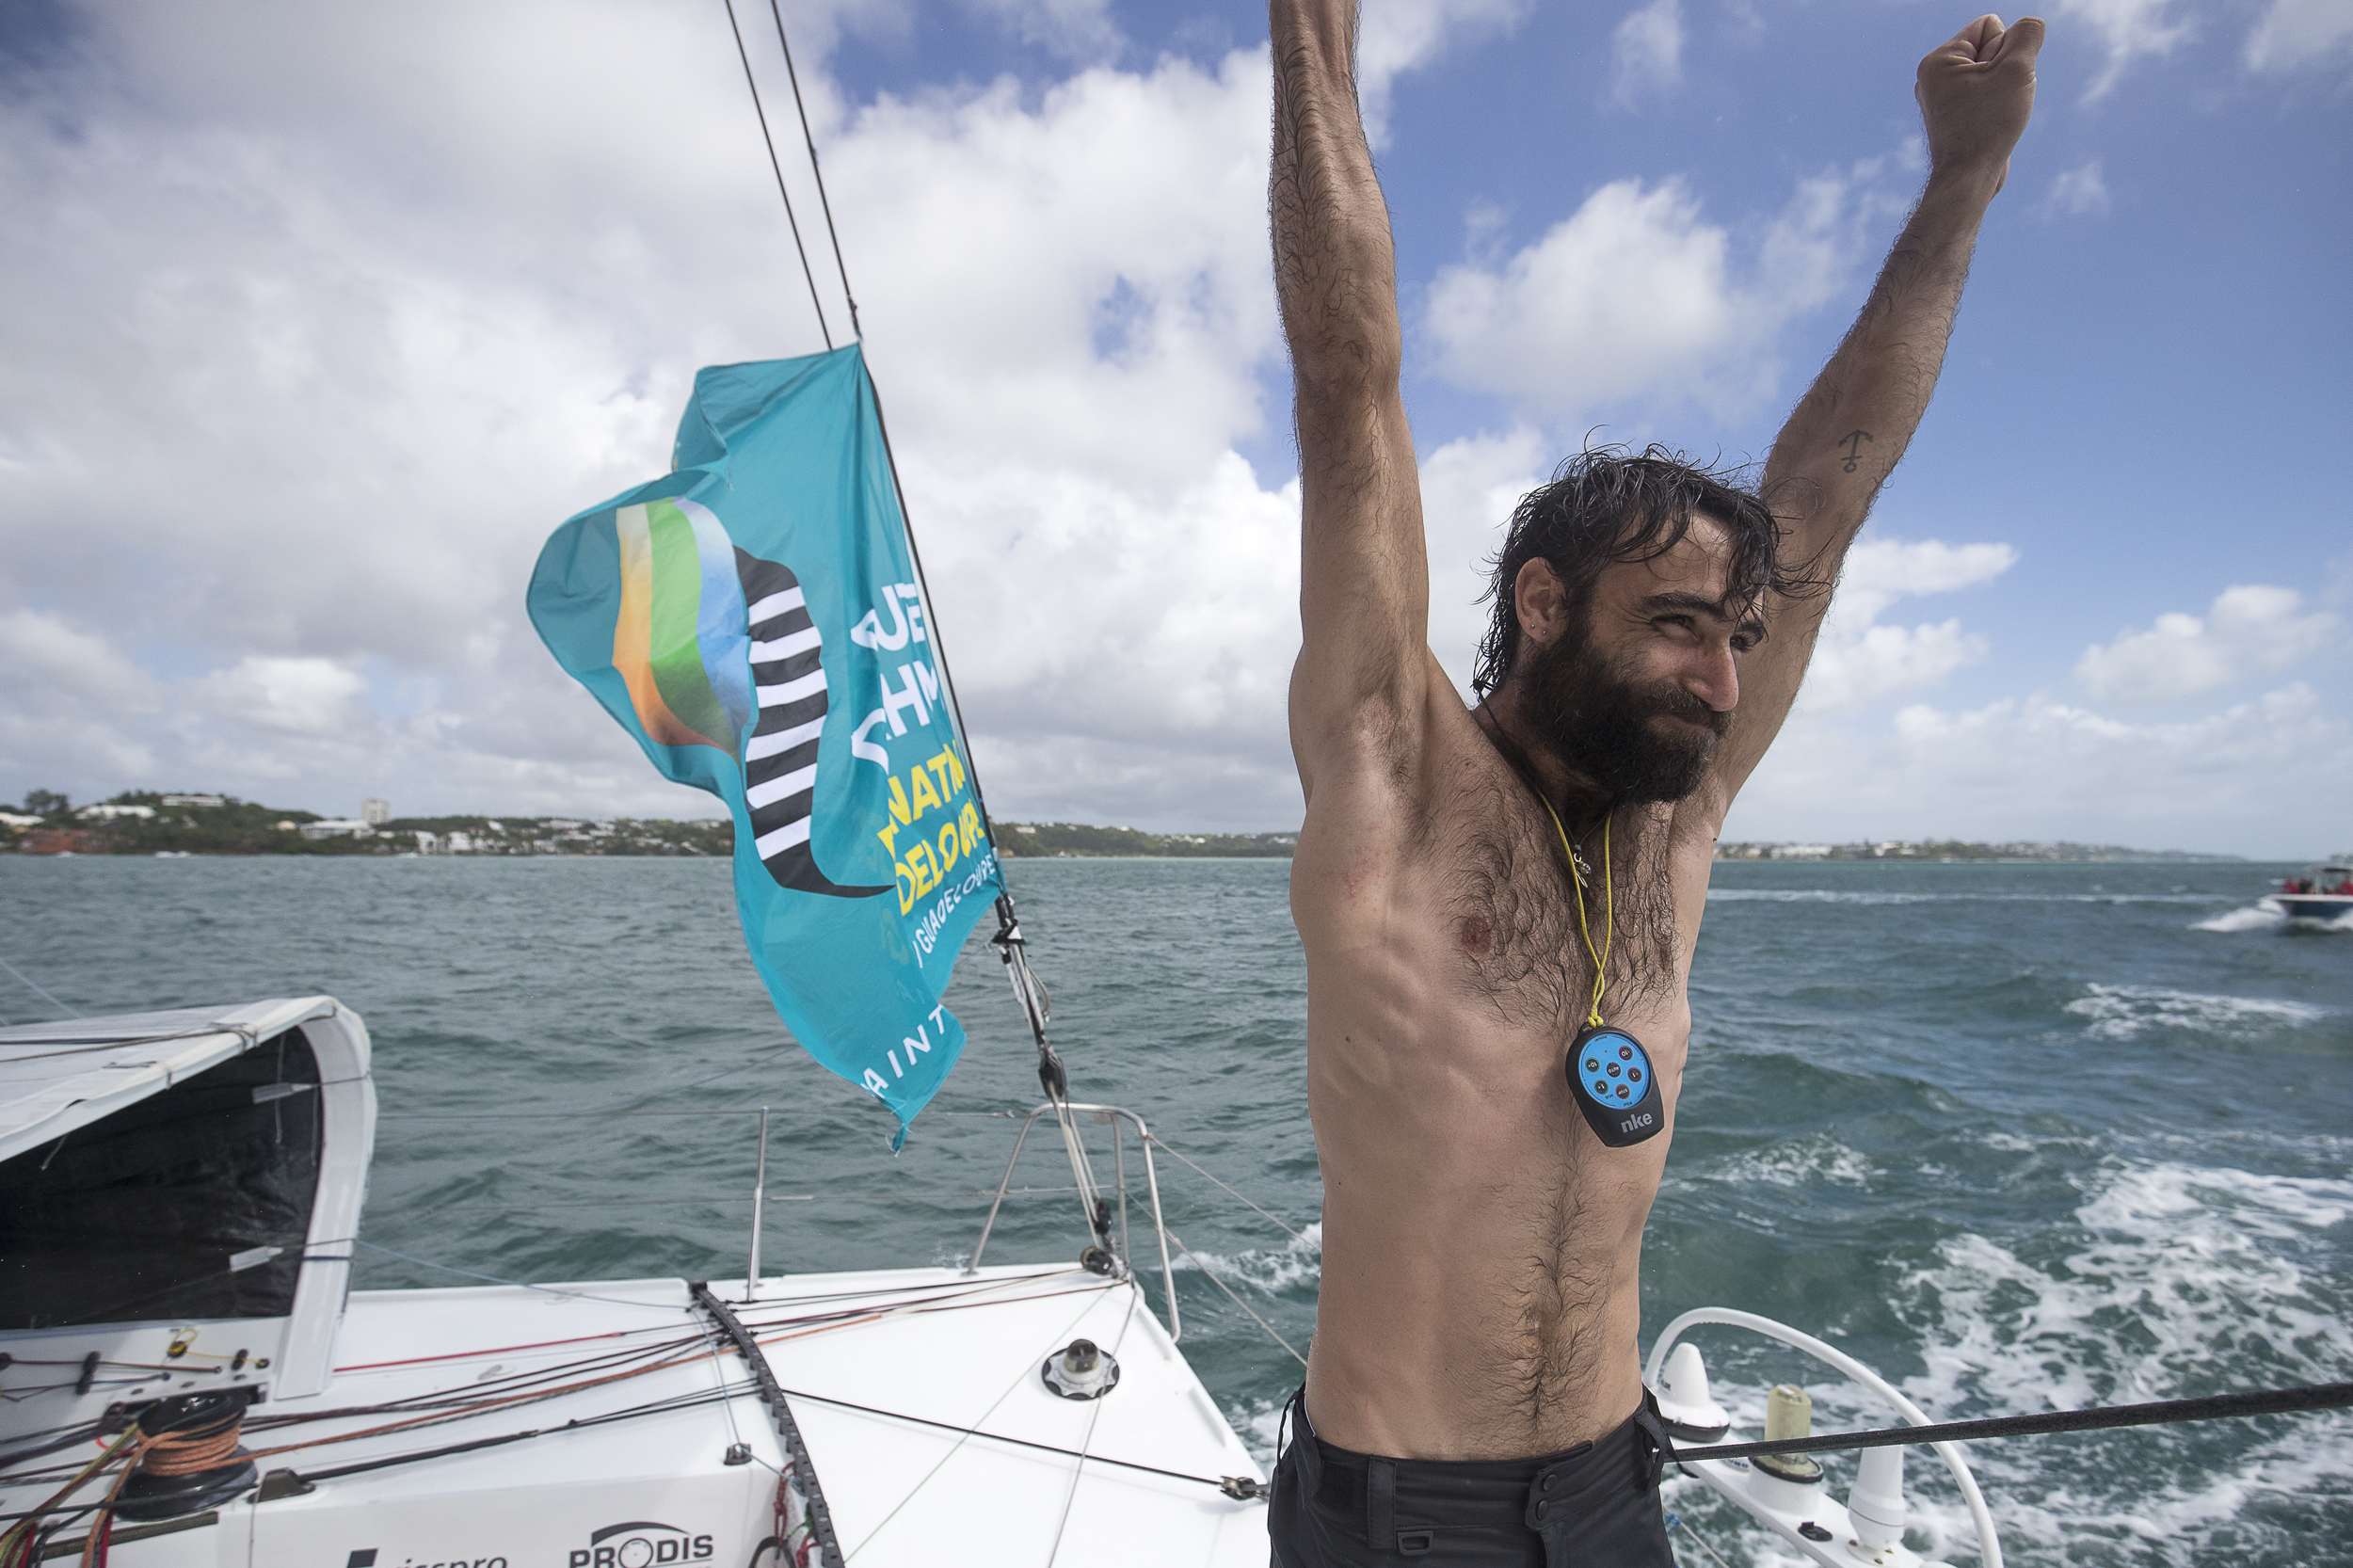 route-du-rhum-on-refait-le-match